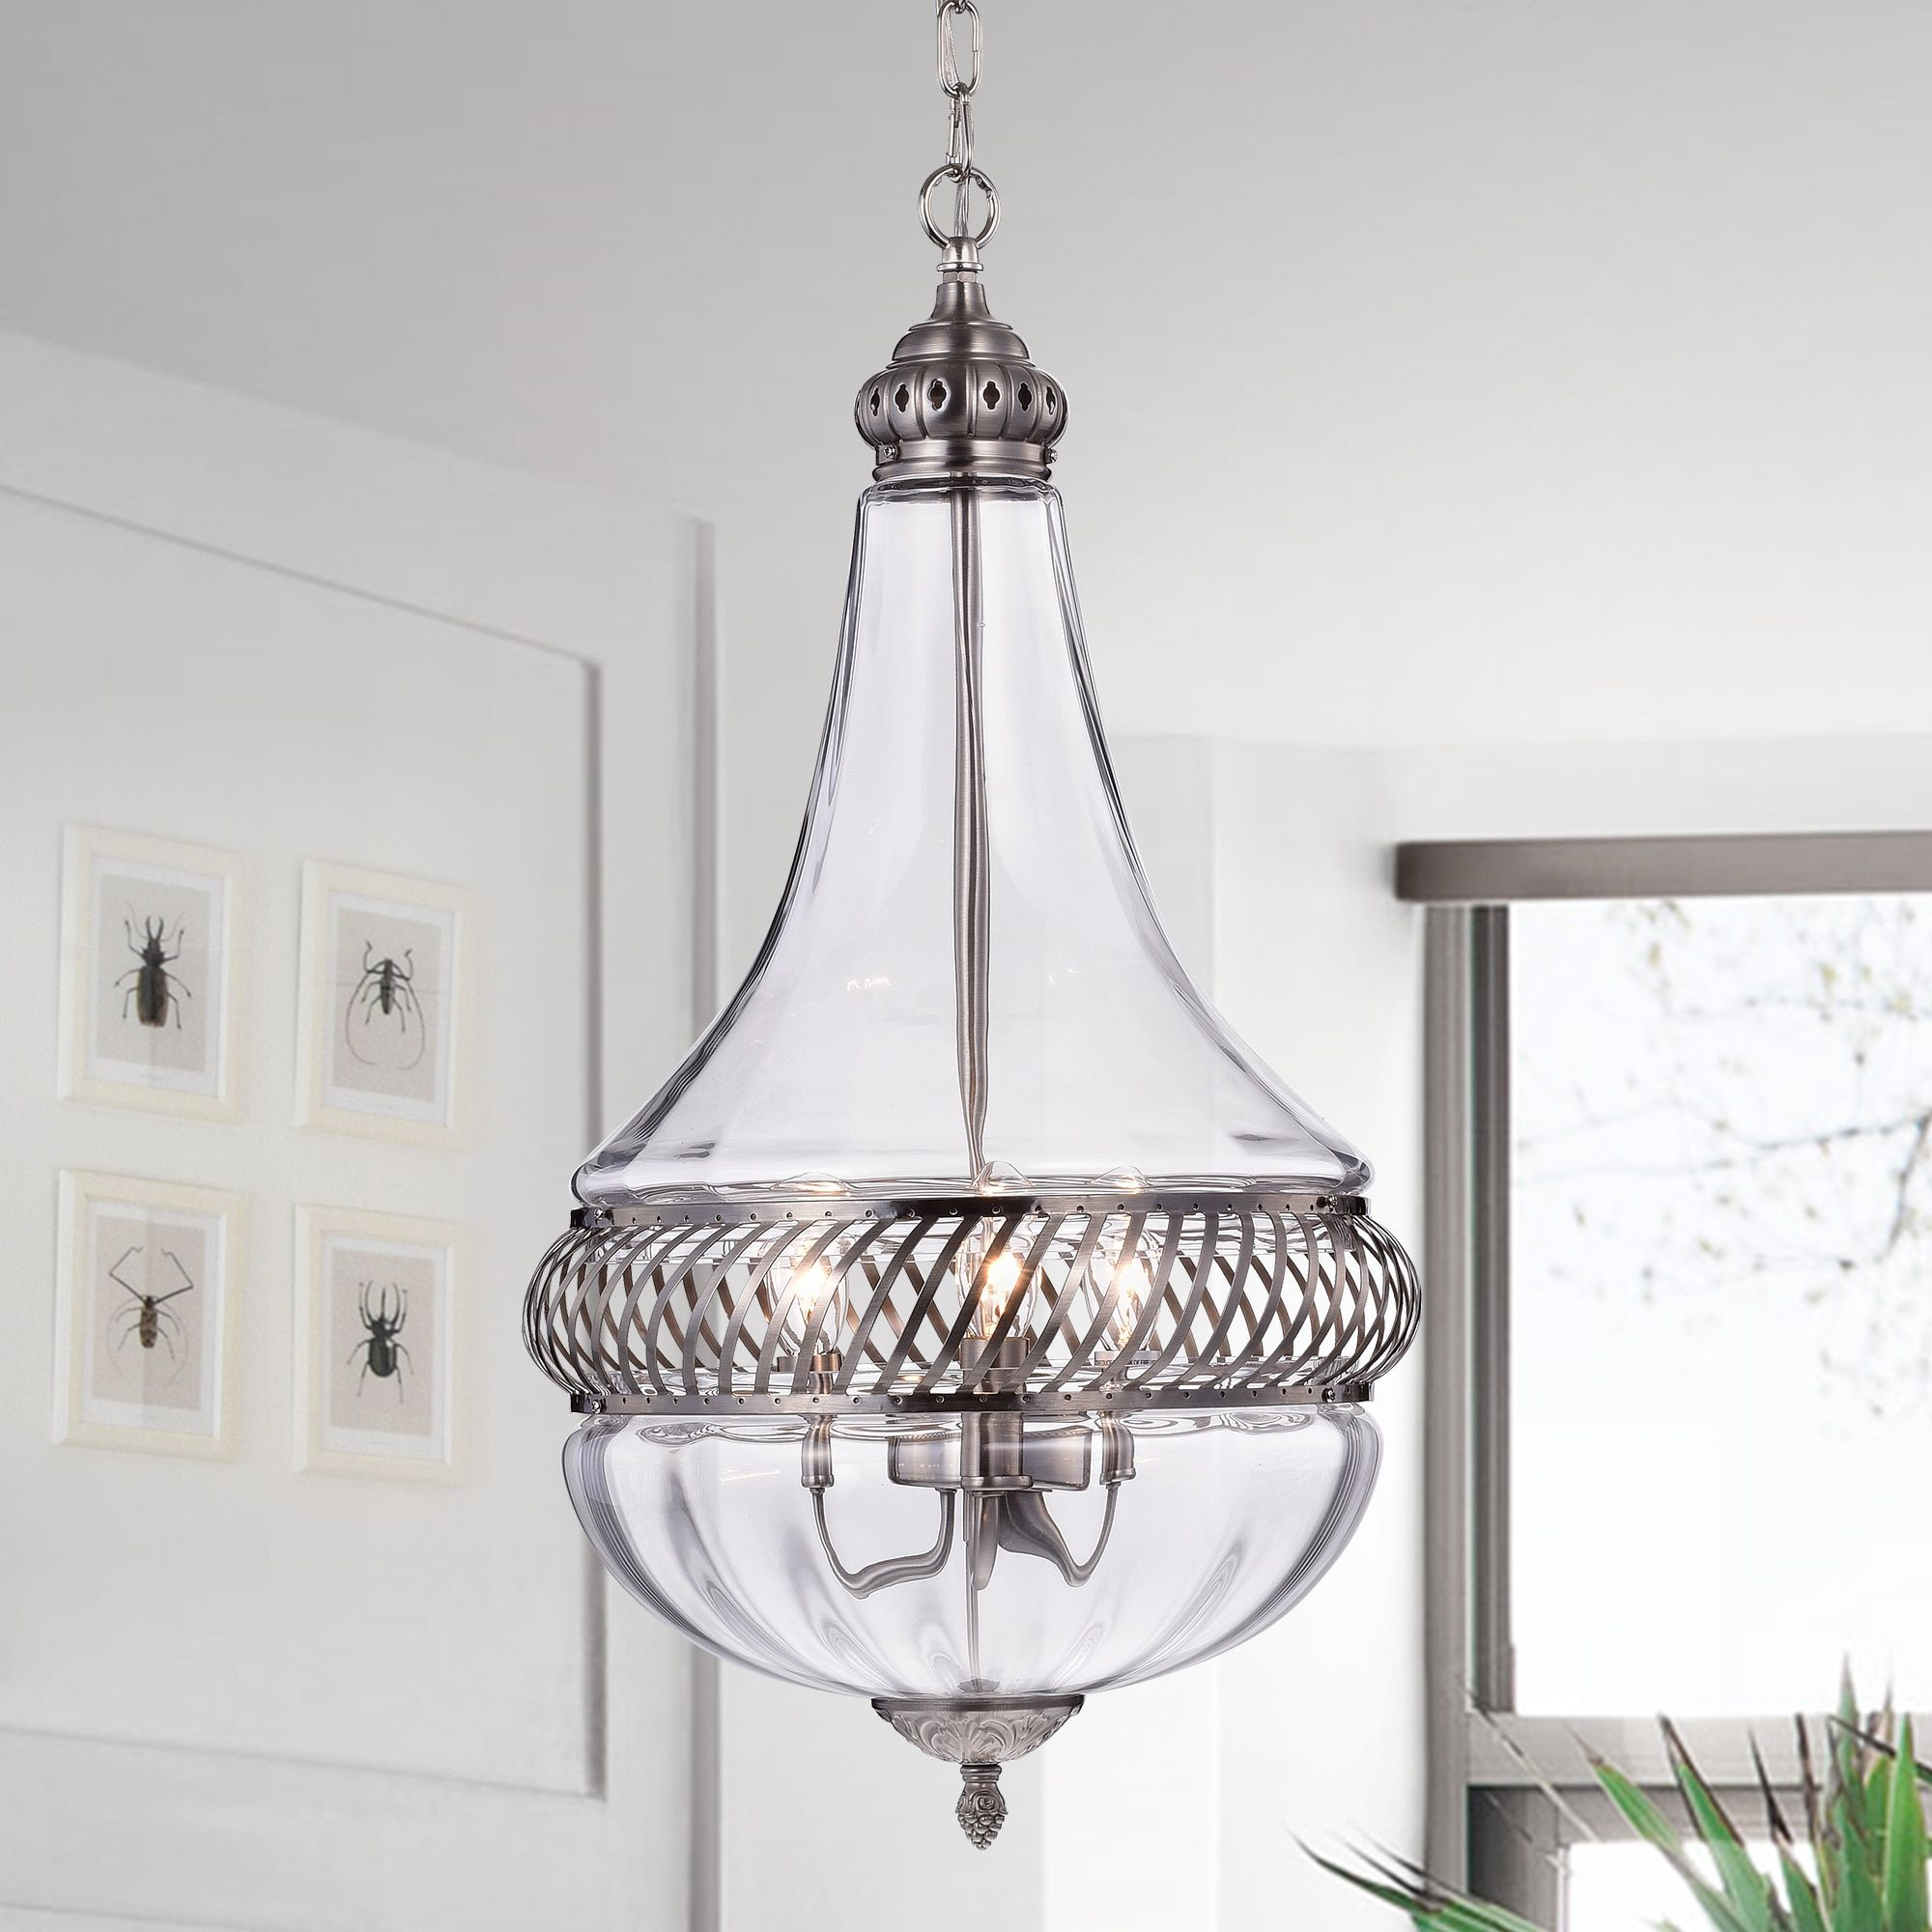 empire drl style at fixtures pendant large old room kitchen of size modern hanging cast chandeliers ceilings antique full island period themed extraordinary dining light iron vintage dinner lights ideas gracious rustic ocean lighting chandelier mini fashioned lanternndant beautiful high fixture for wrought french small stylish